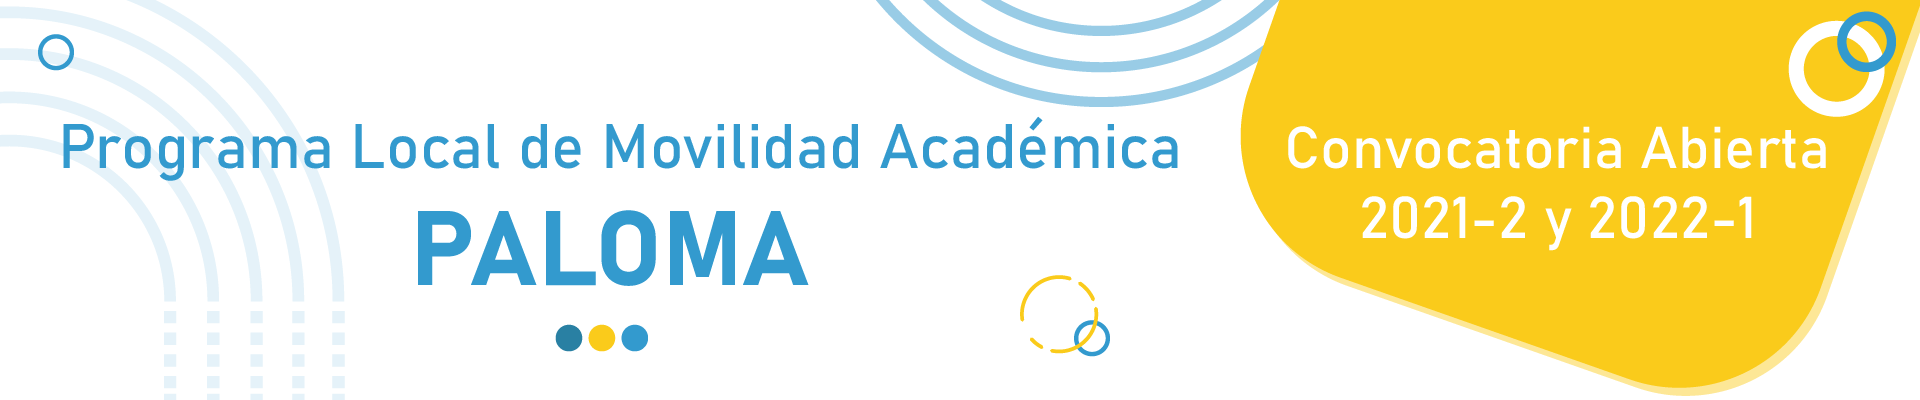 Convocatoria Programa Local de Movilidad Académica Paloma 2021-2 y 2022-1